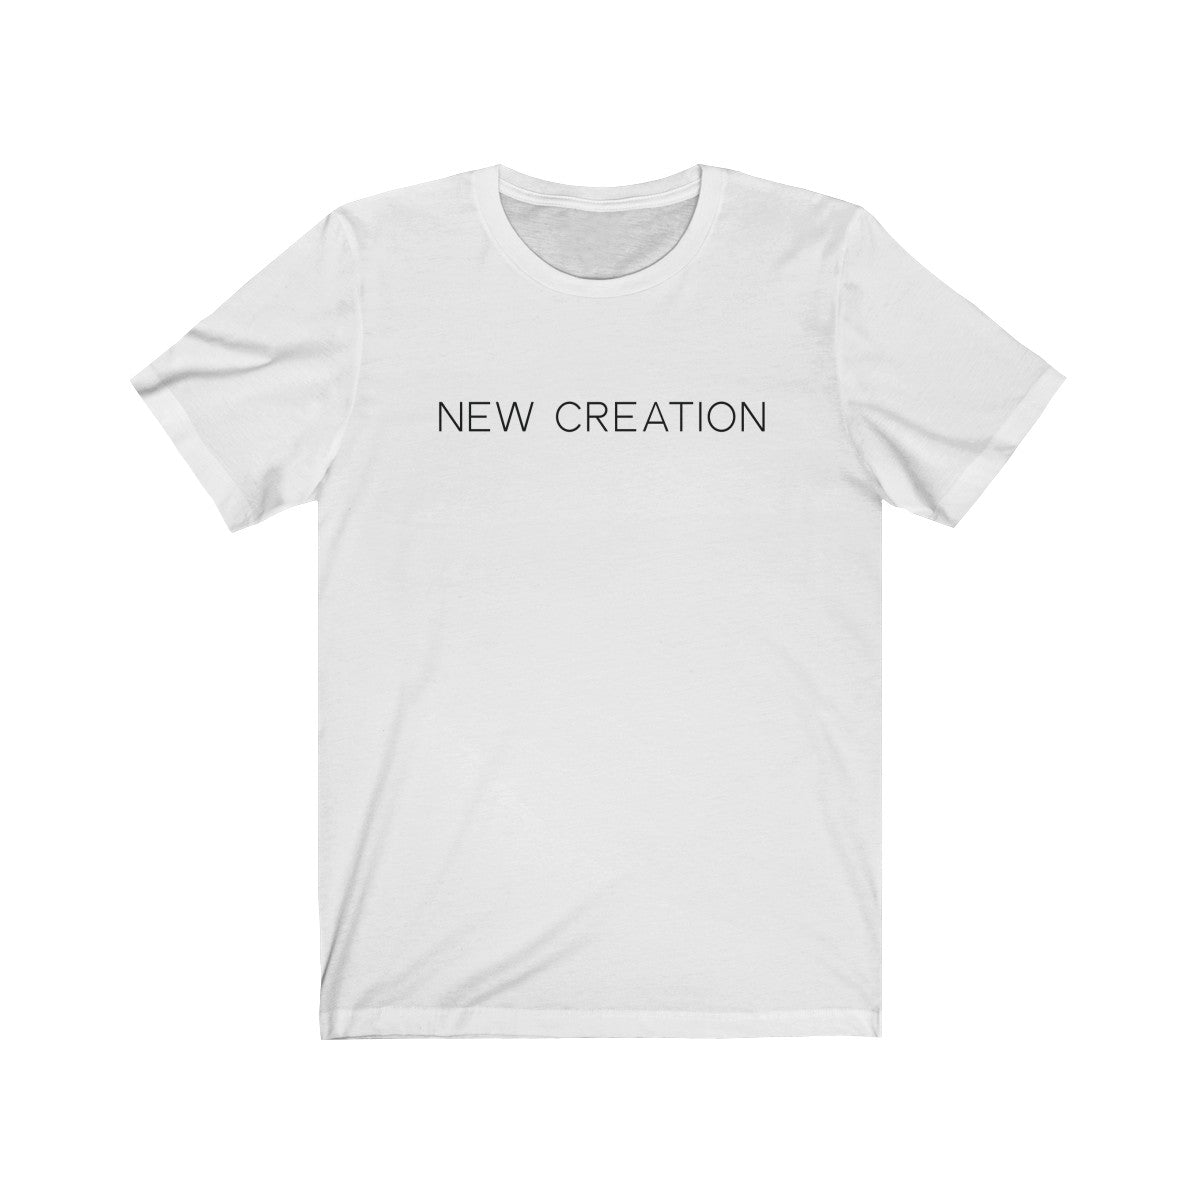 NEW CREATION TEE